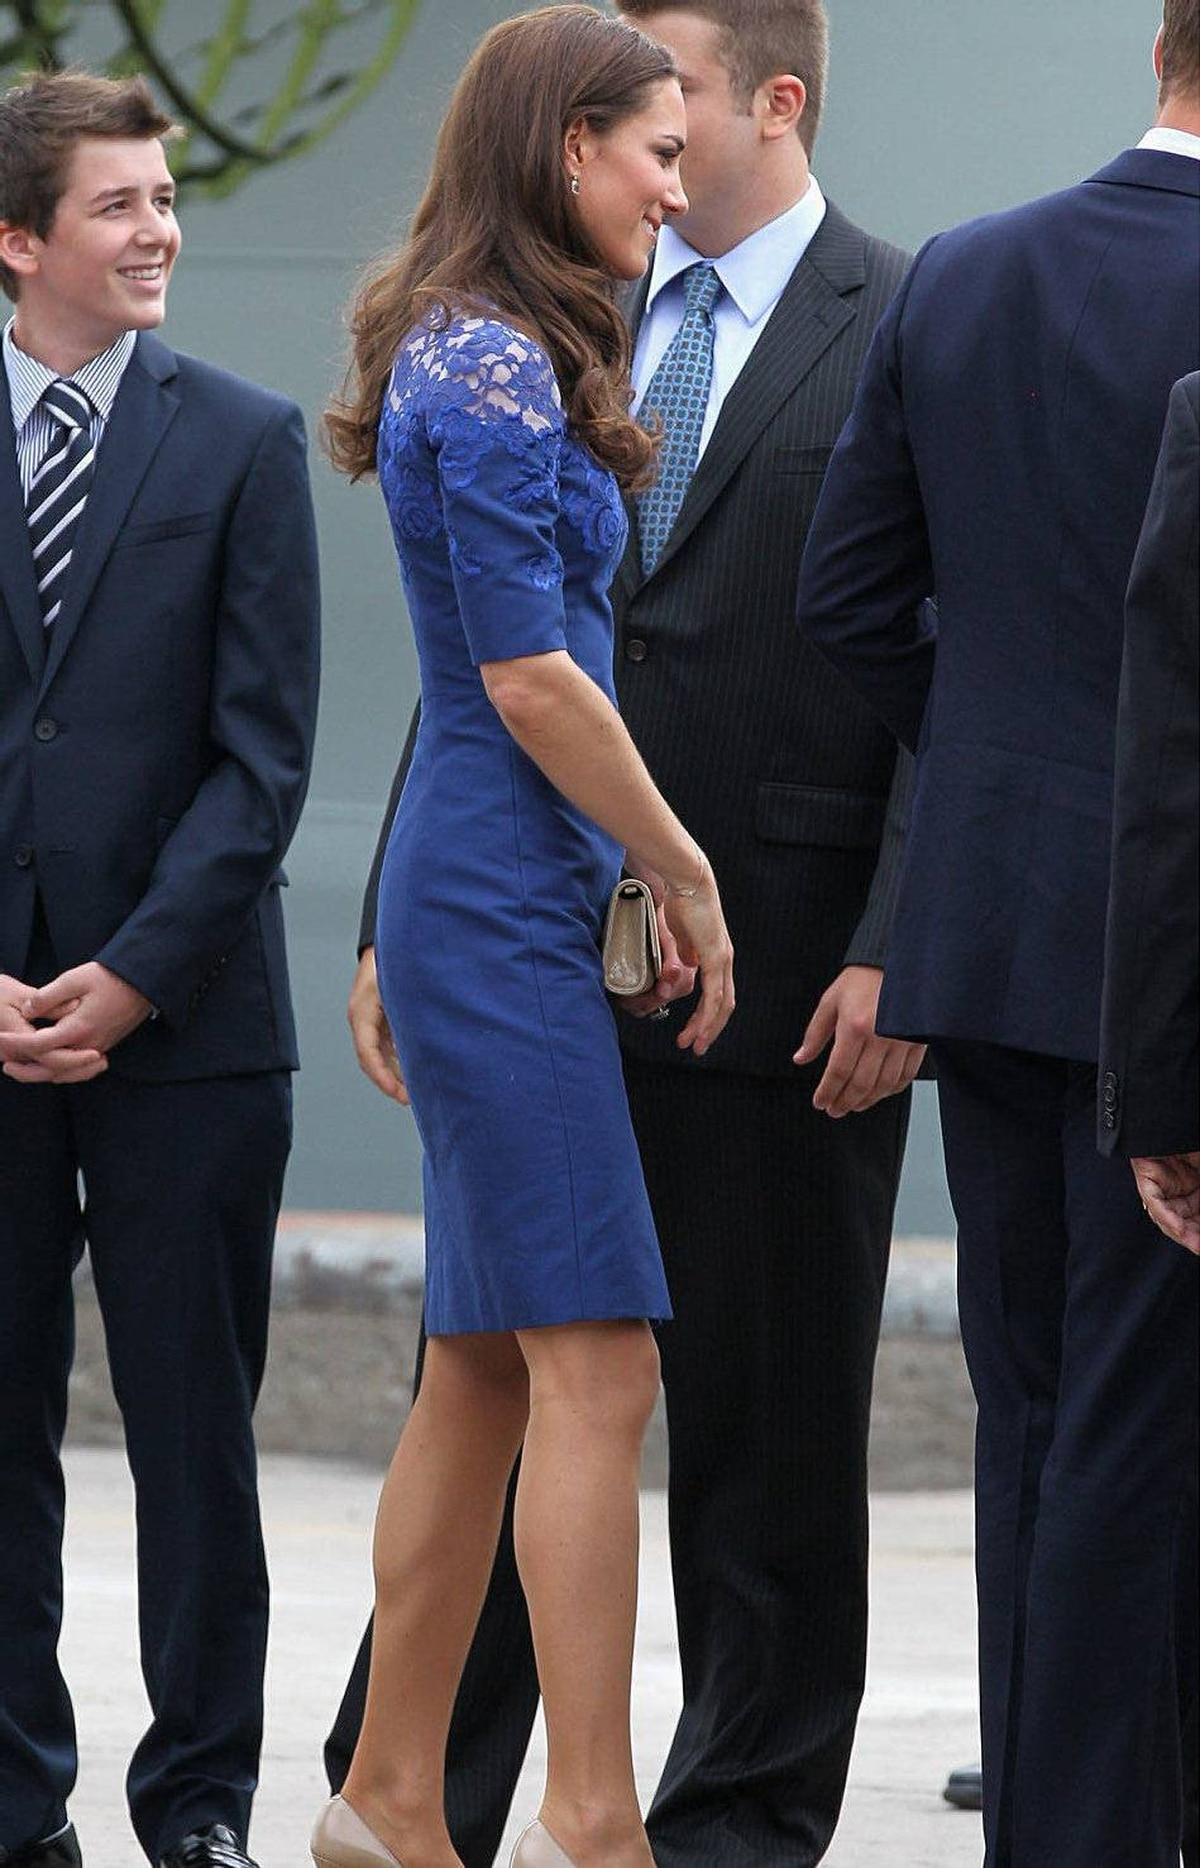 Catherine, Duchess of Cambridge disembarks HMCS Montreal on July 3, 2011 in Quebec, Canada.